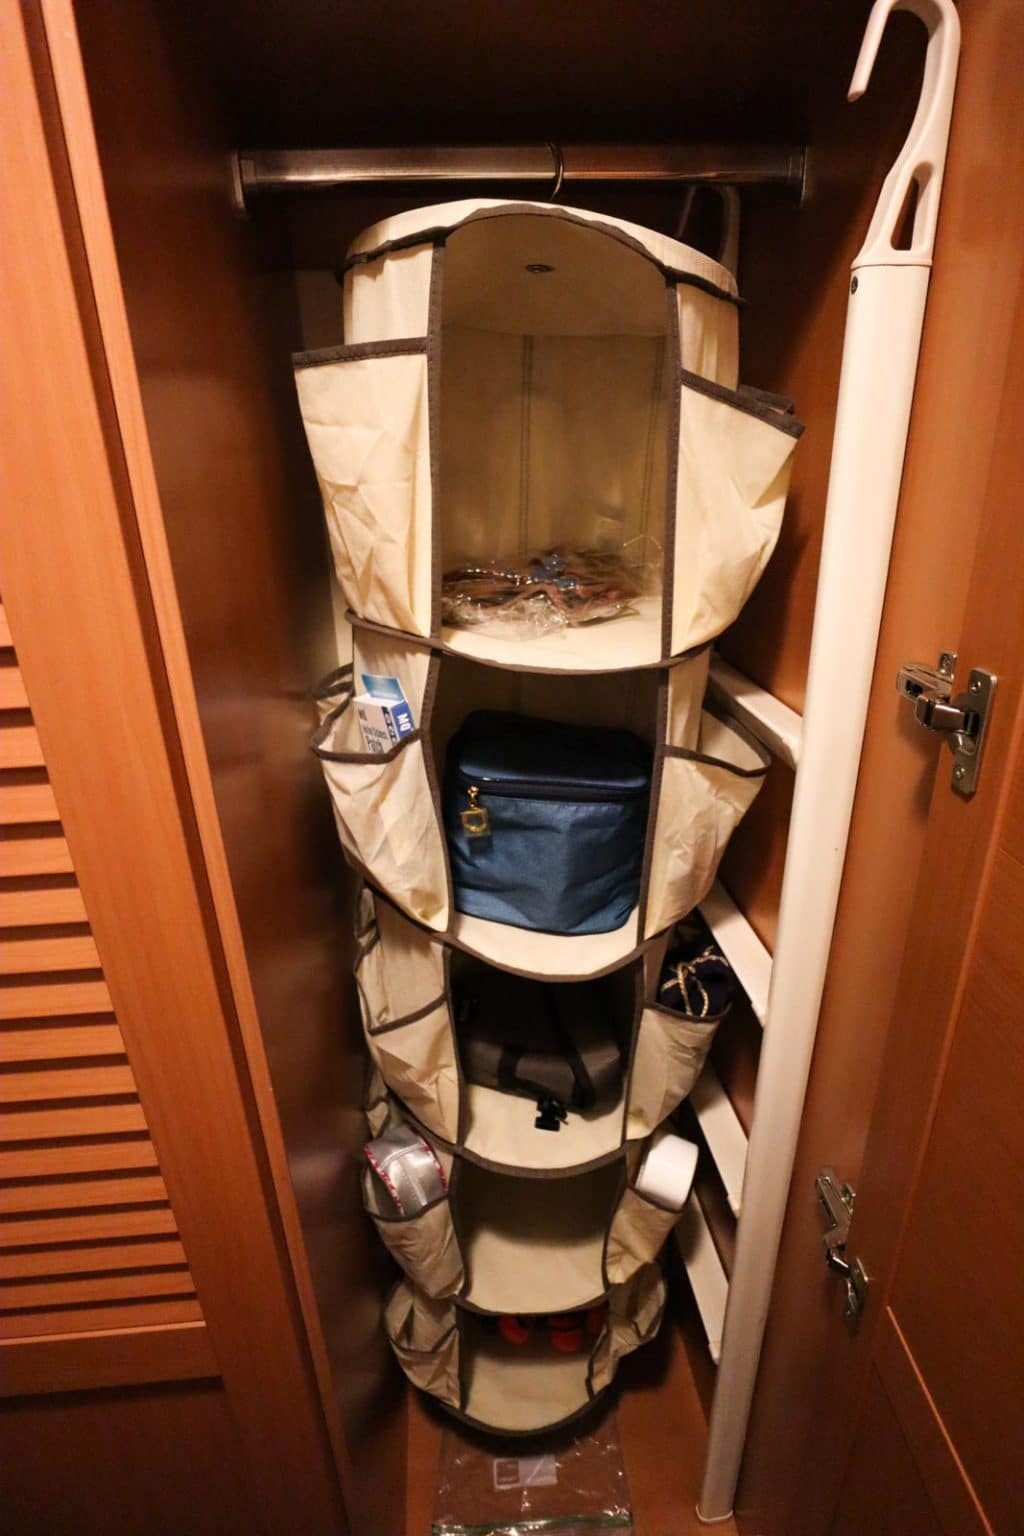 A spinning hanging organizer is hanging in the closet in a stateroom on the Disney Fantasy.